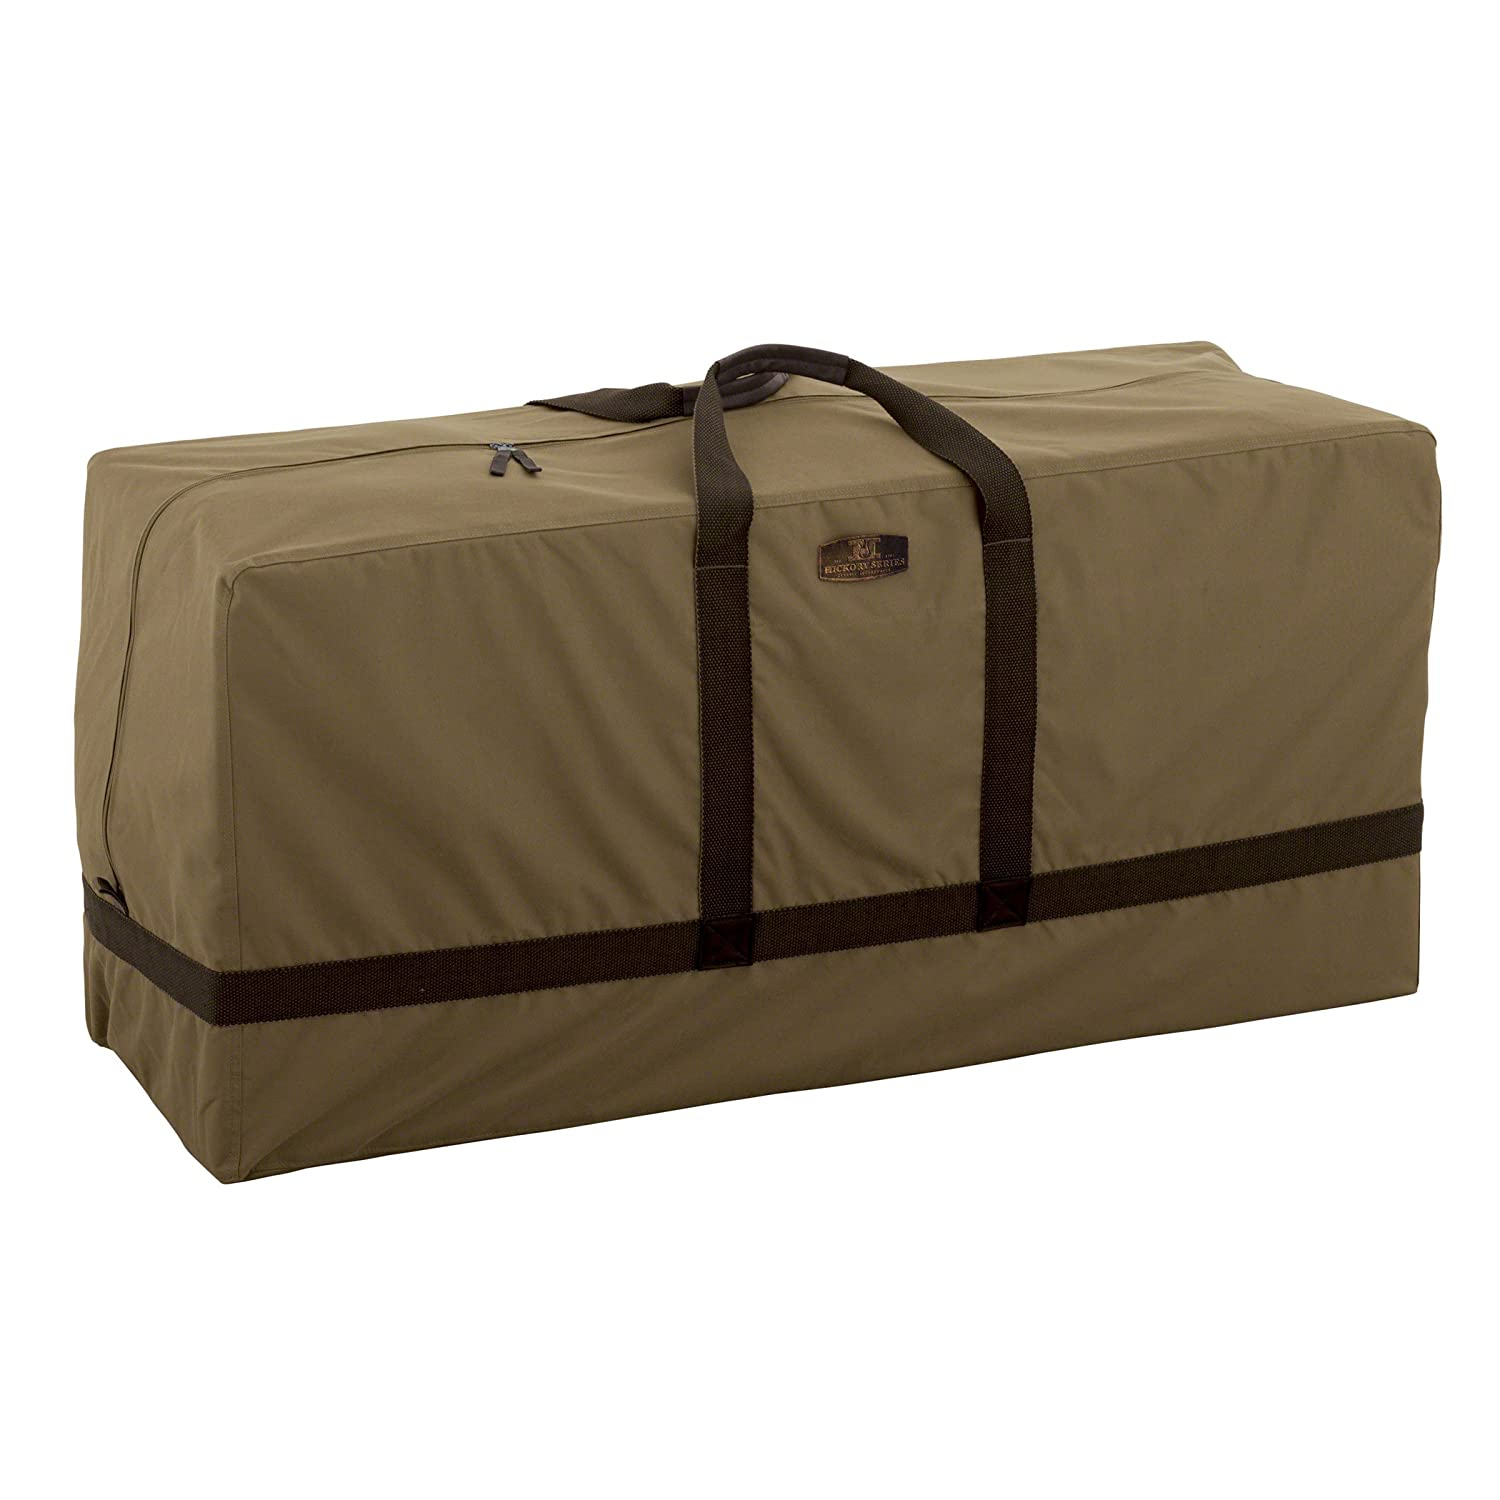 Classic Accessories Hickory Patio Seat Cushion/Cover Storage Bag